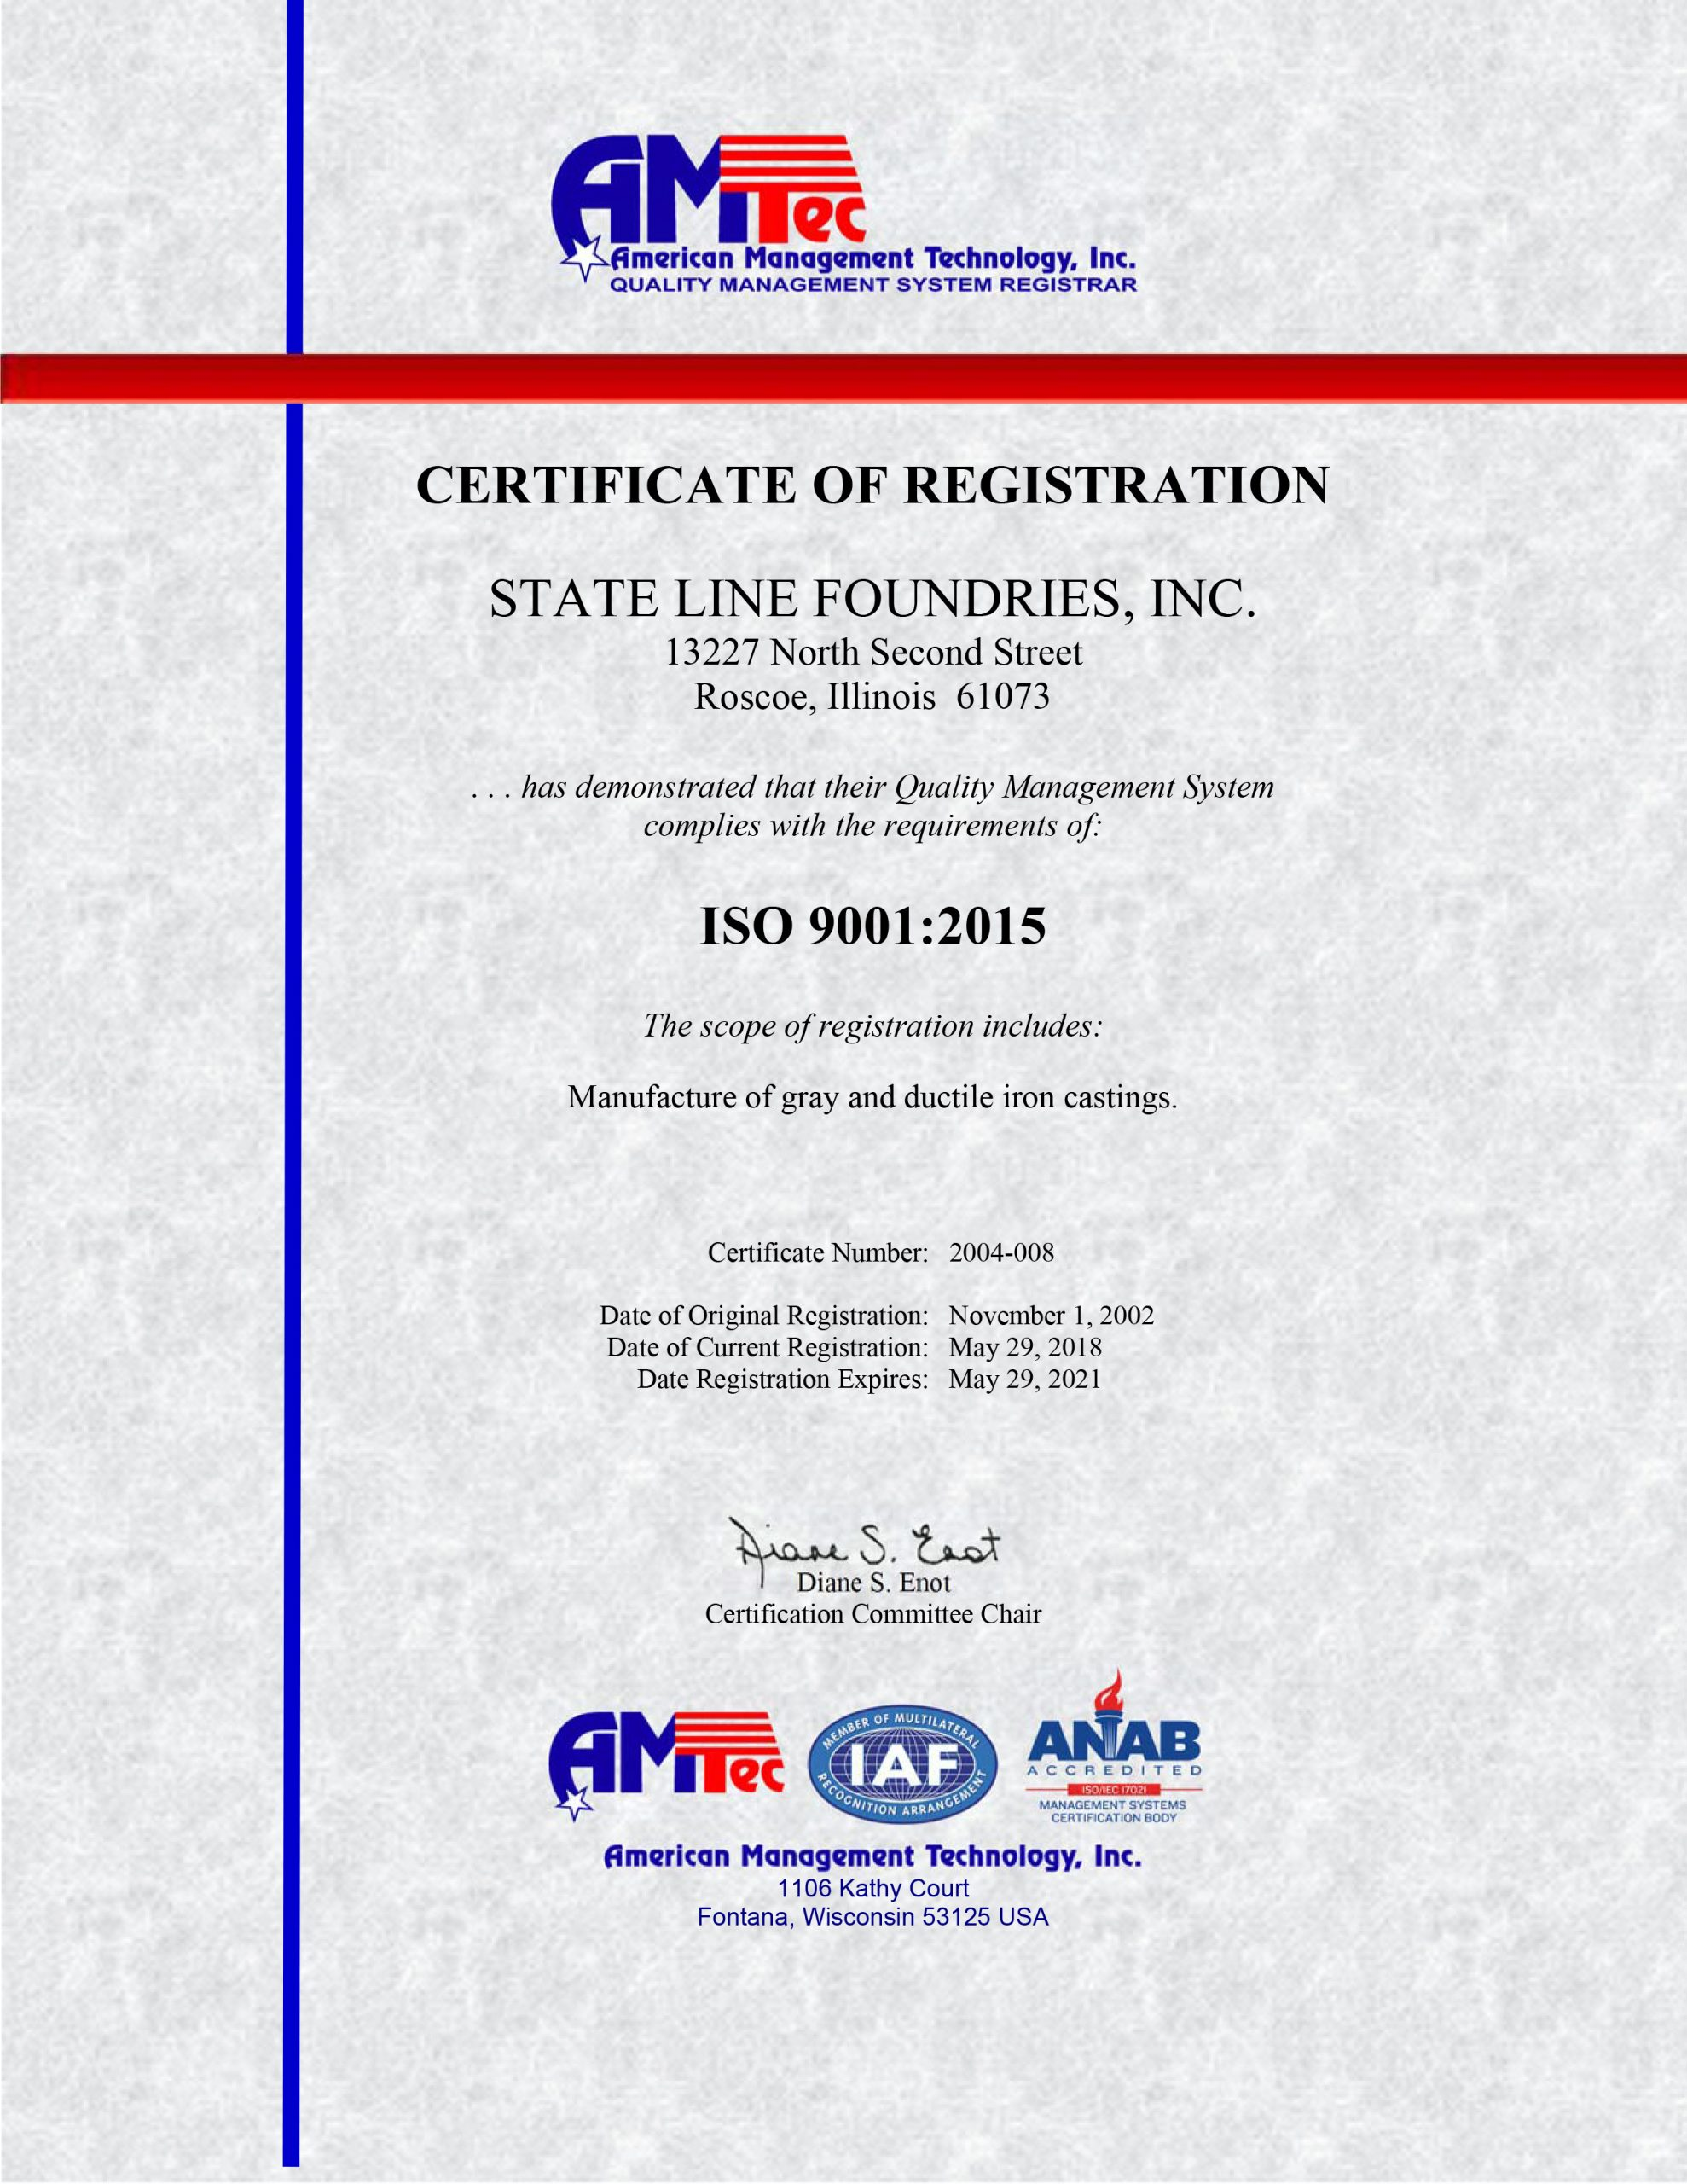 ISOCertificate 18 2